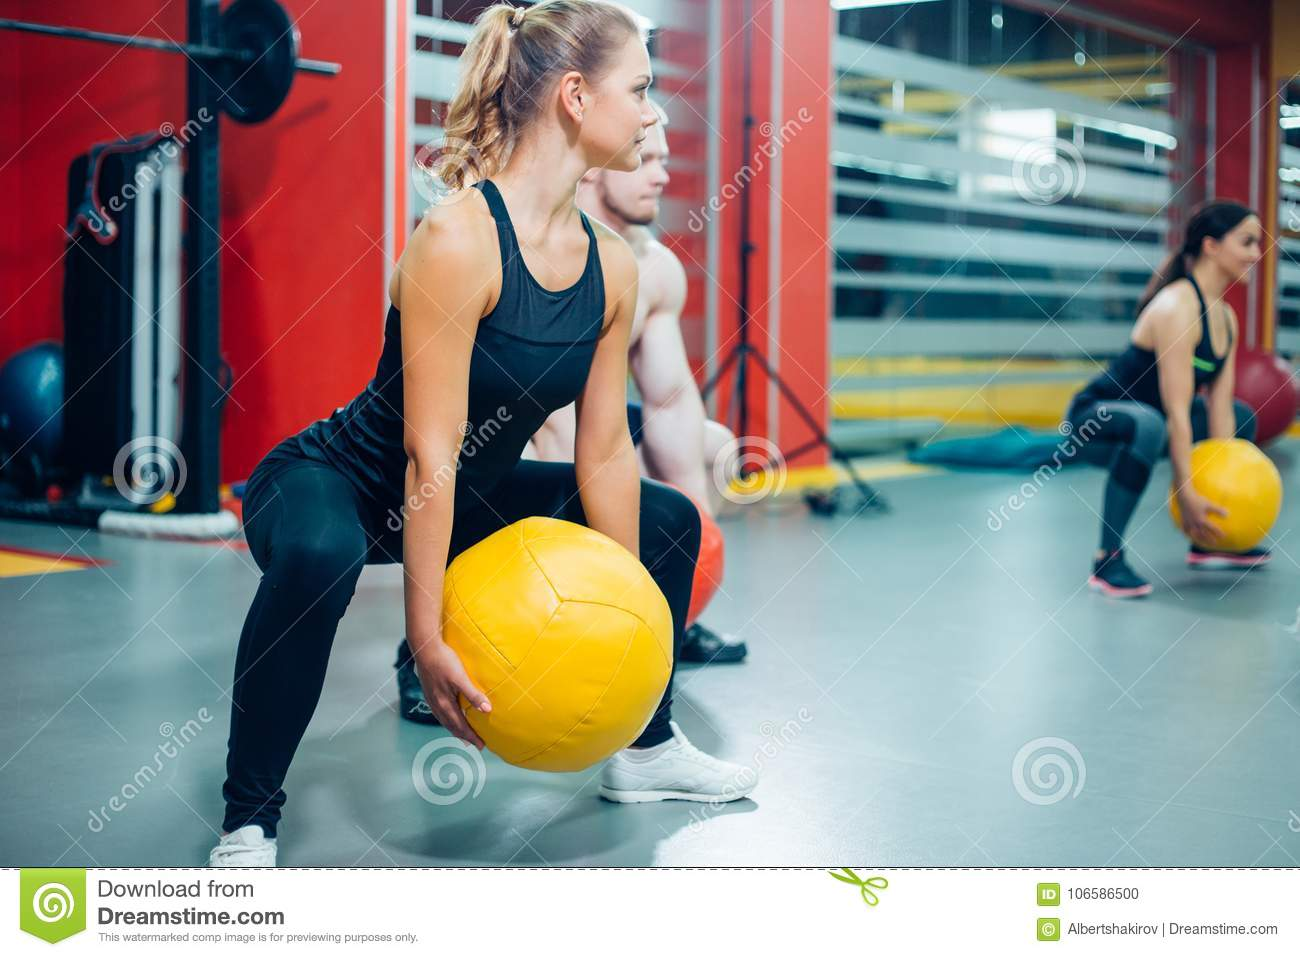 Cross Fit Woman With Ball In Gym Stock Photo - Image of fitness, equipment:  106586500